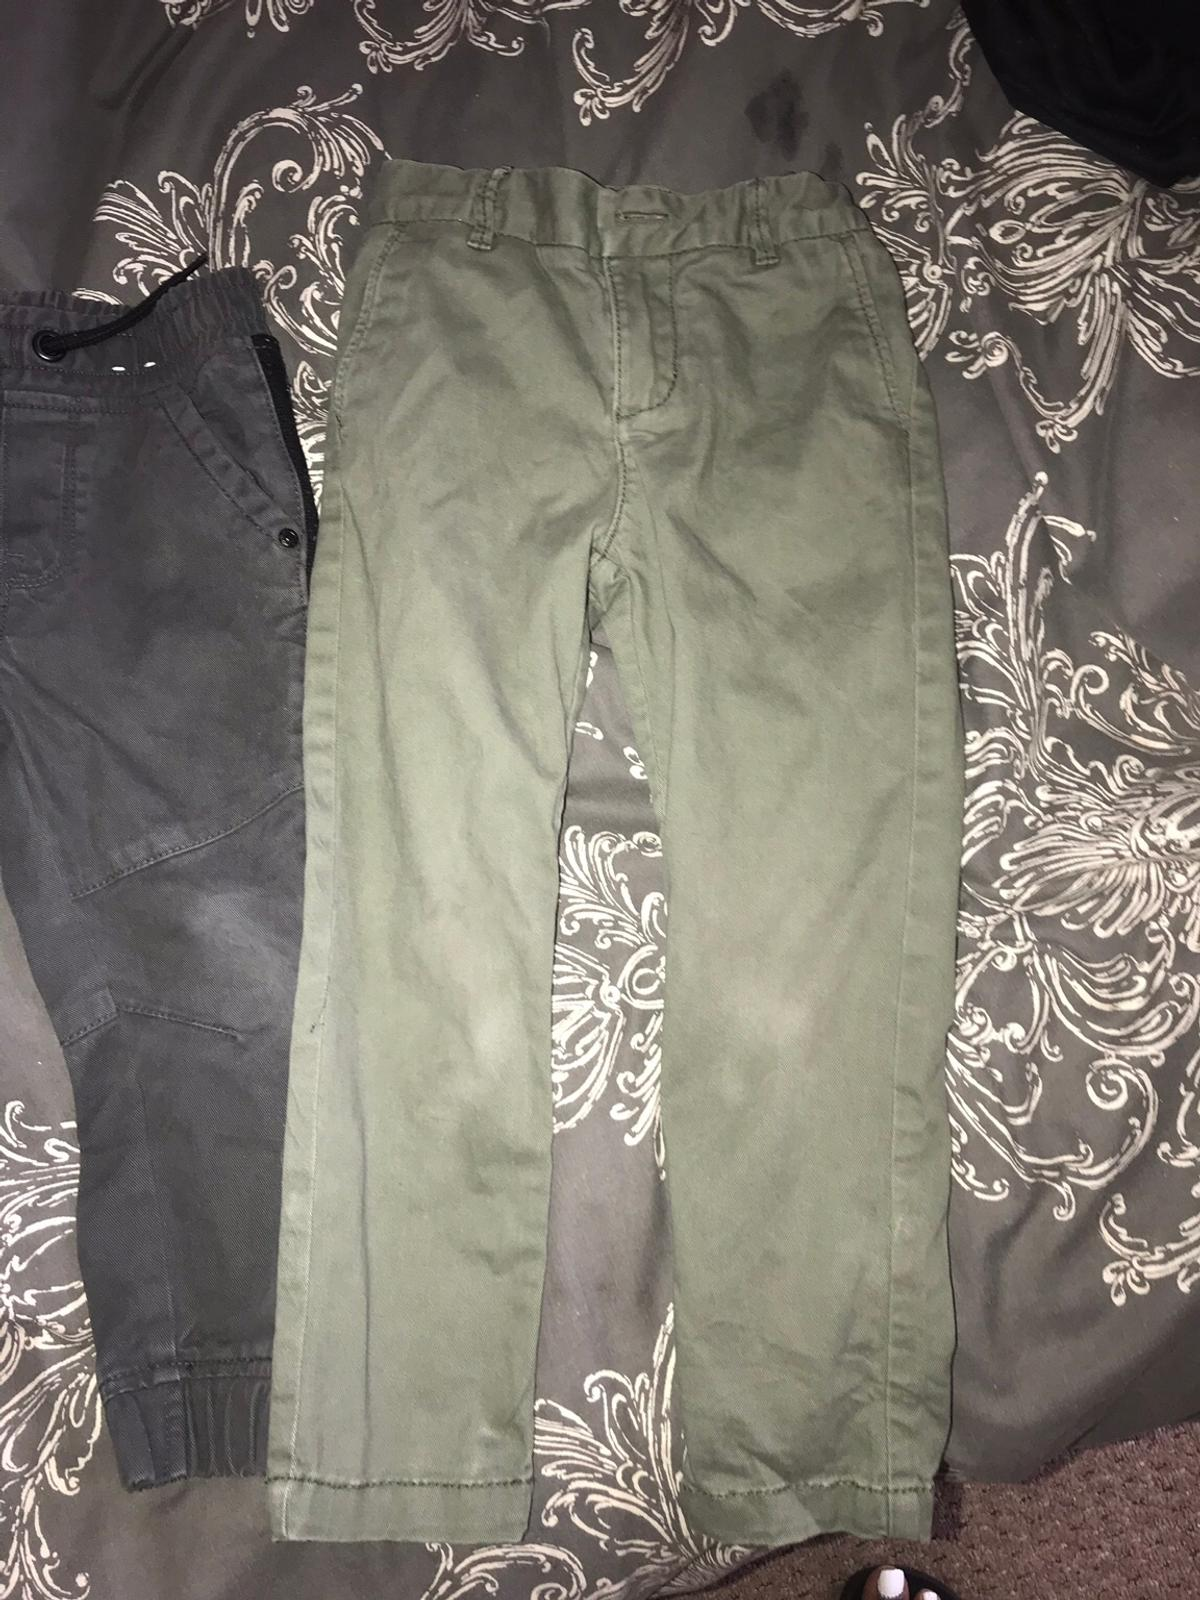 Good condition aged 3yrs jeans are new